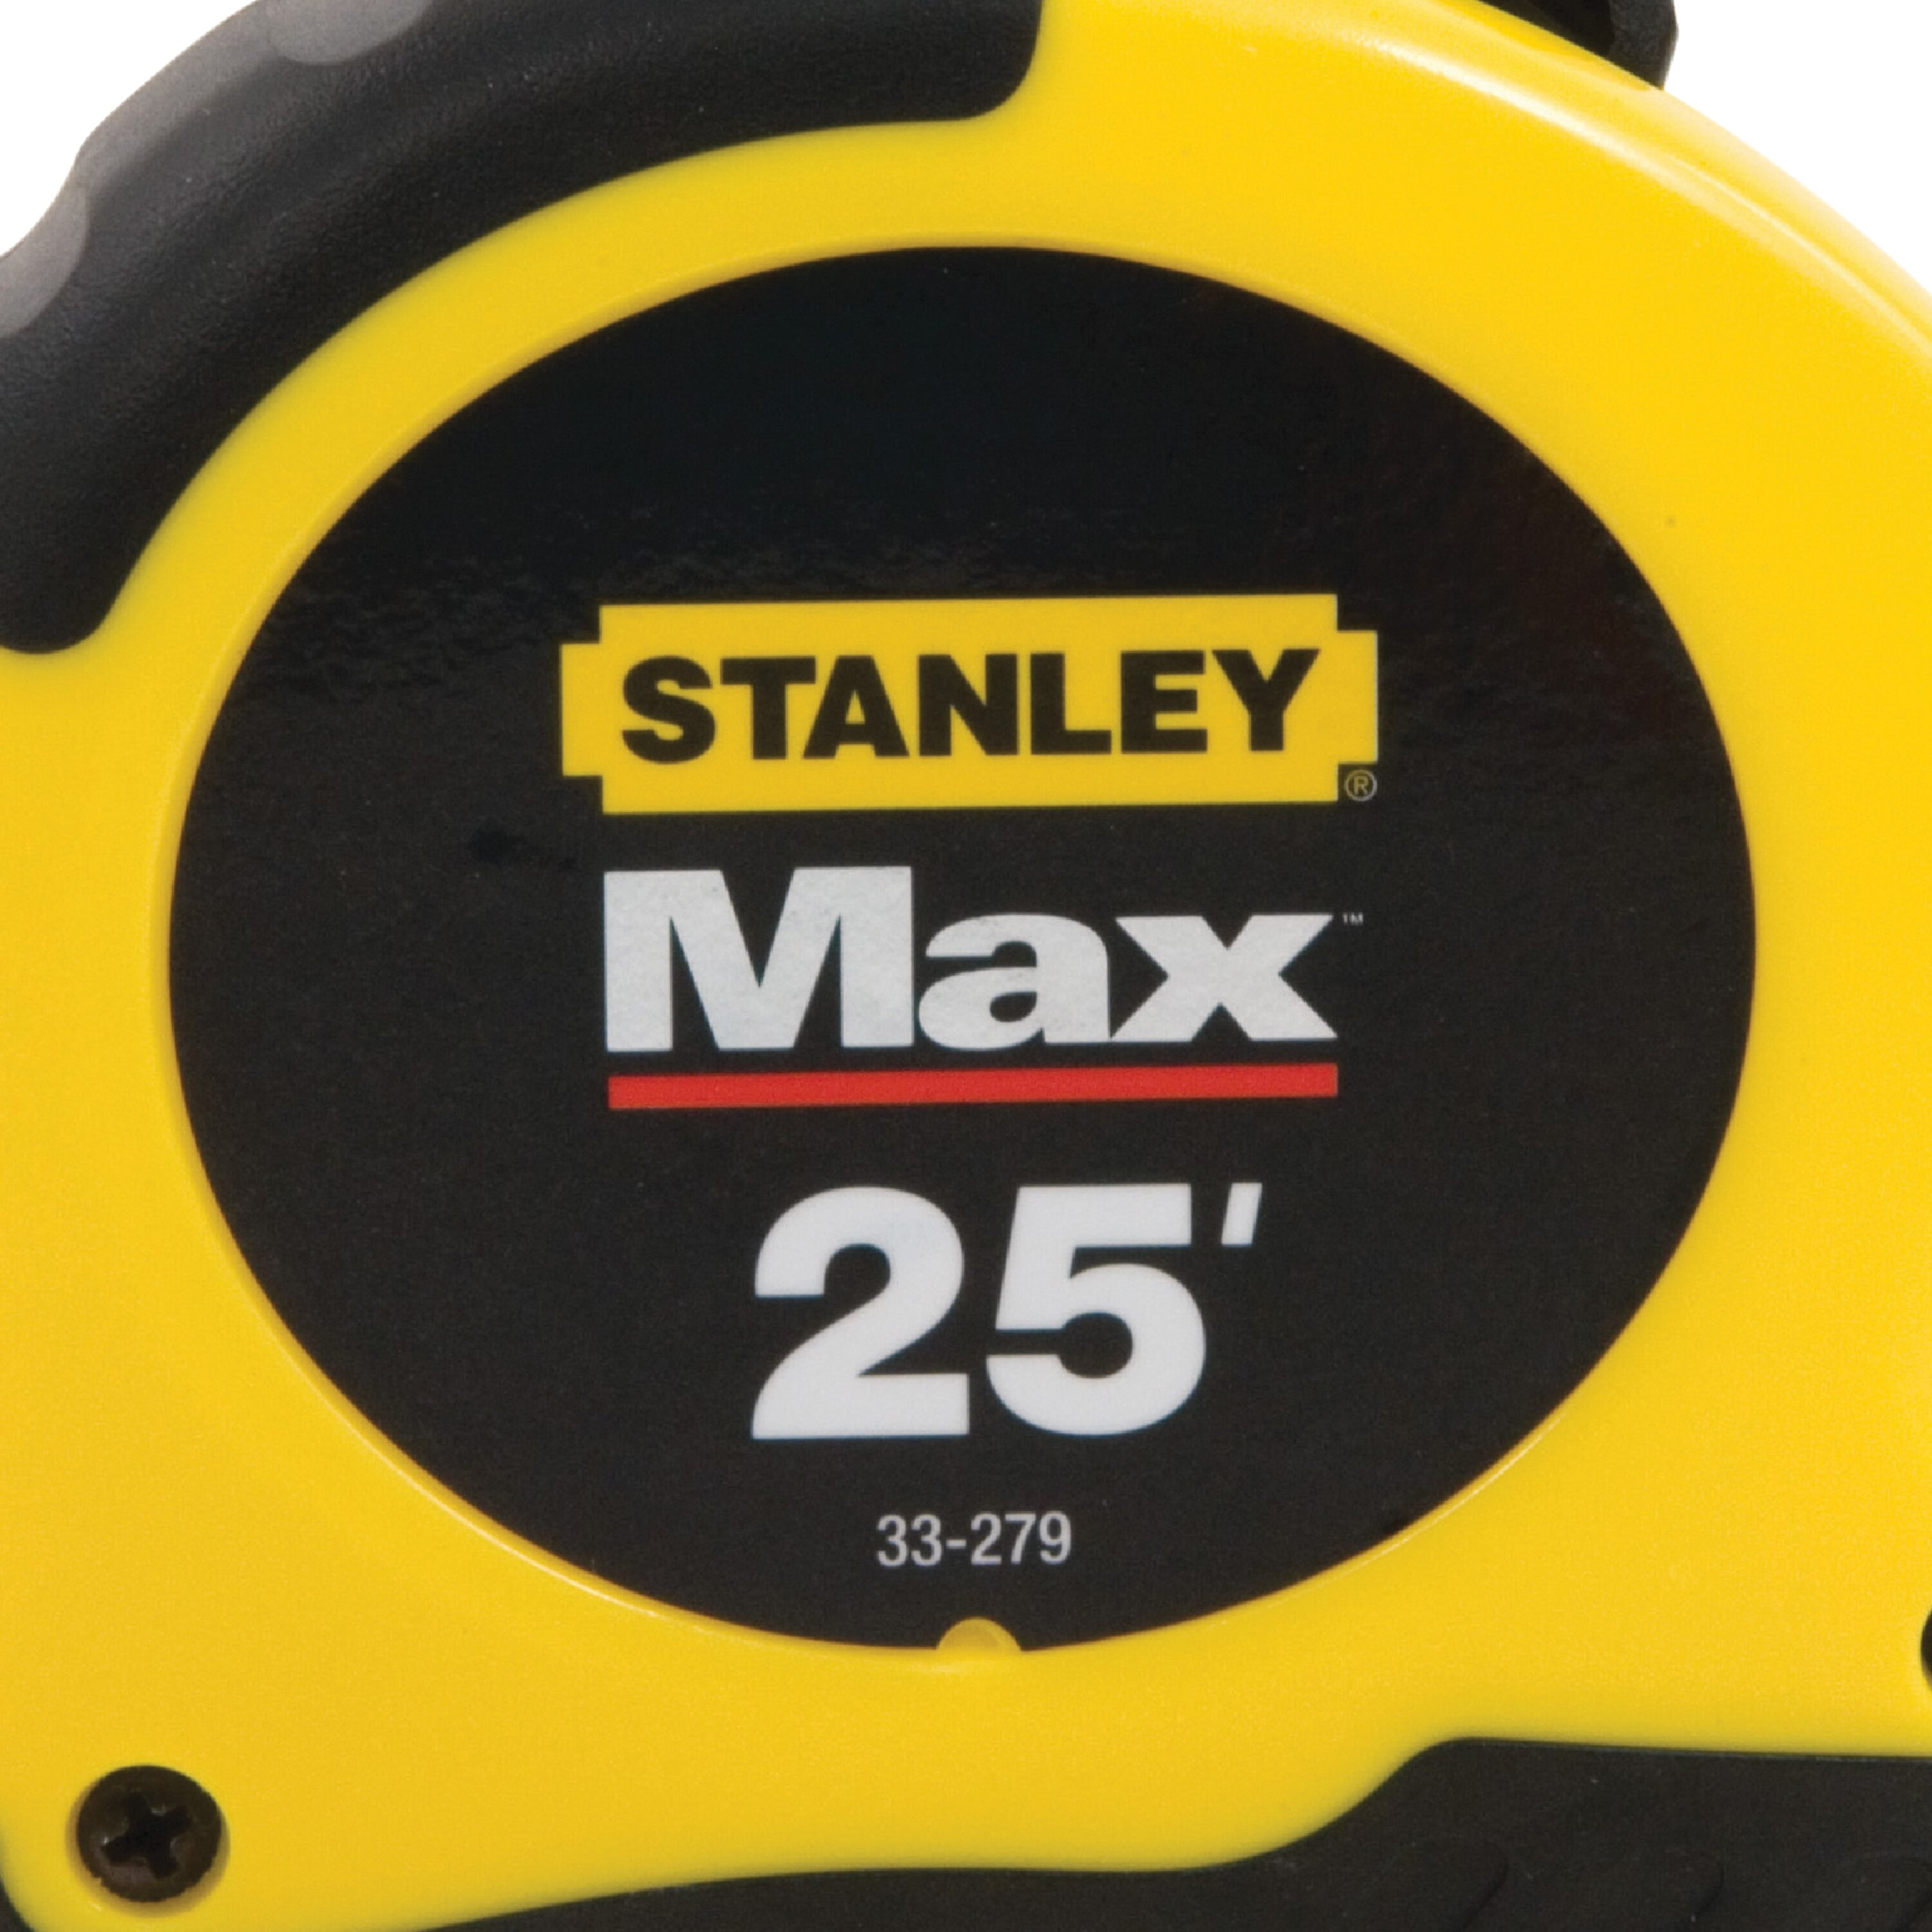 Stanley Tools - 25 ft Max Tape Measure - 33-279